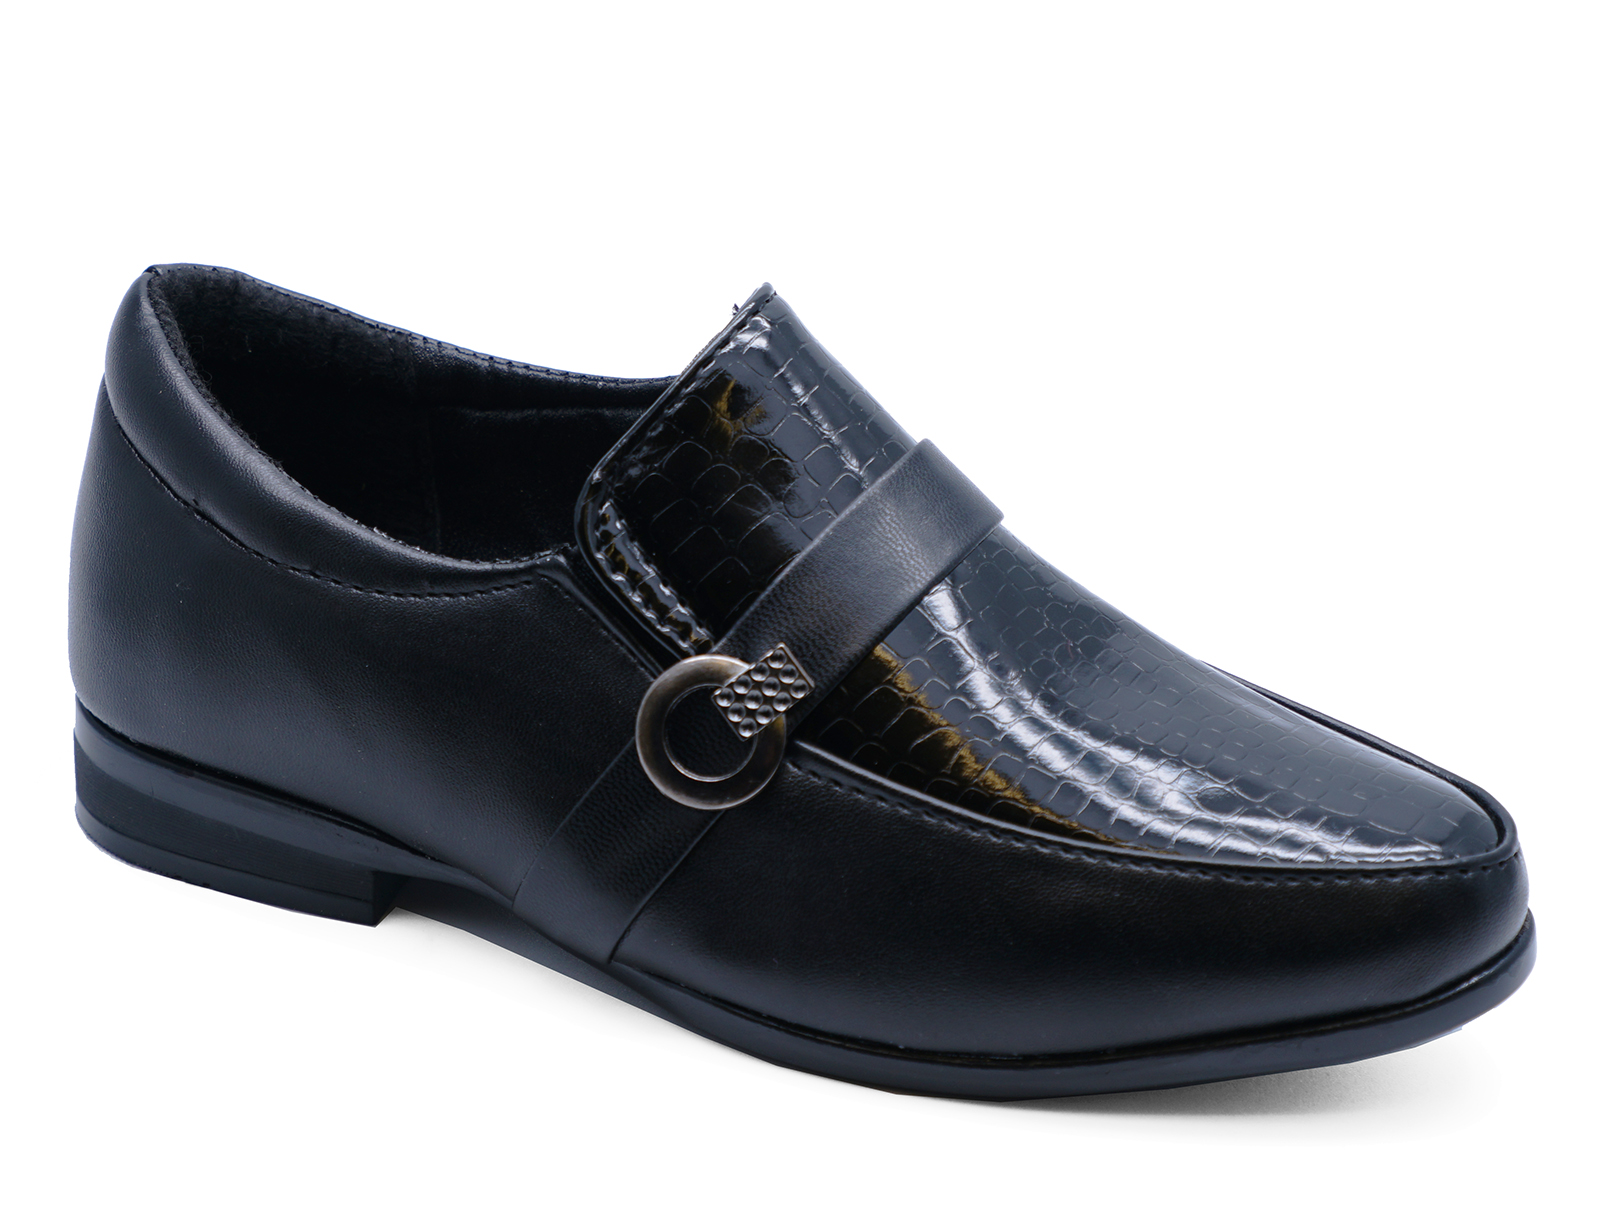 BOYS-KIDS-JUNIOR-BLACK-SCHOOL-SLIP-ON-SMART-WEDDING-LOAFERS-SHOES-SIZES-8-6 thumbnail 6